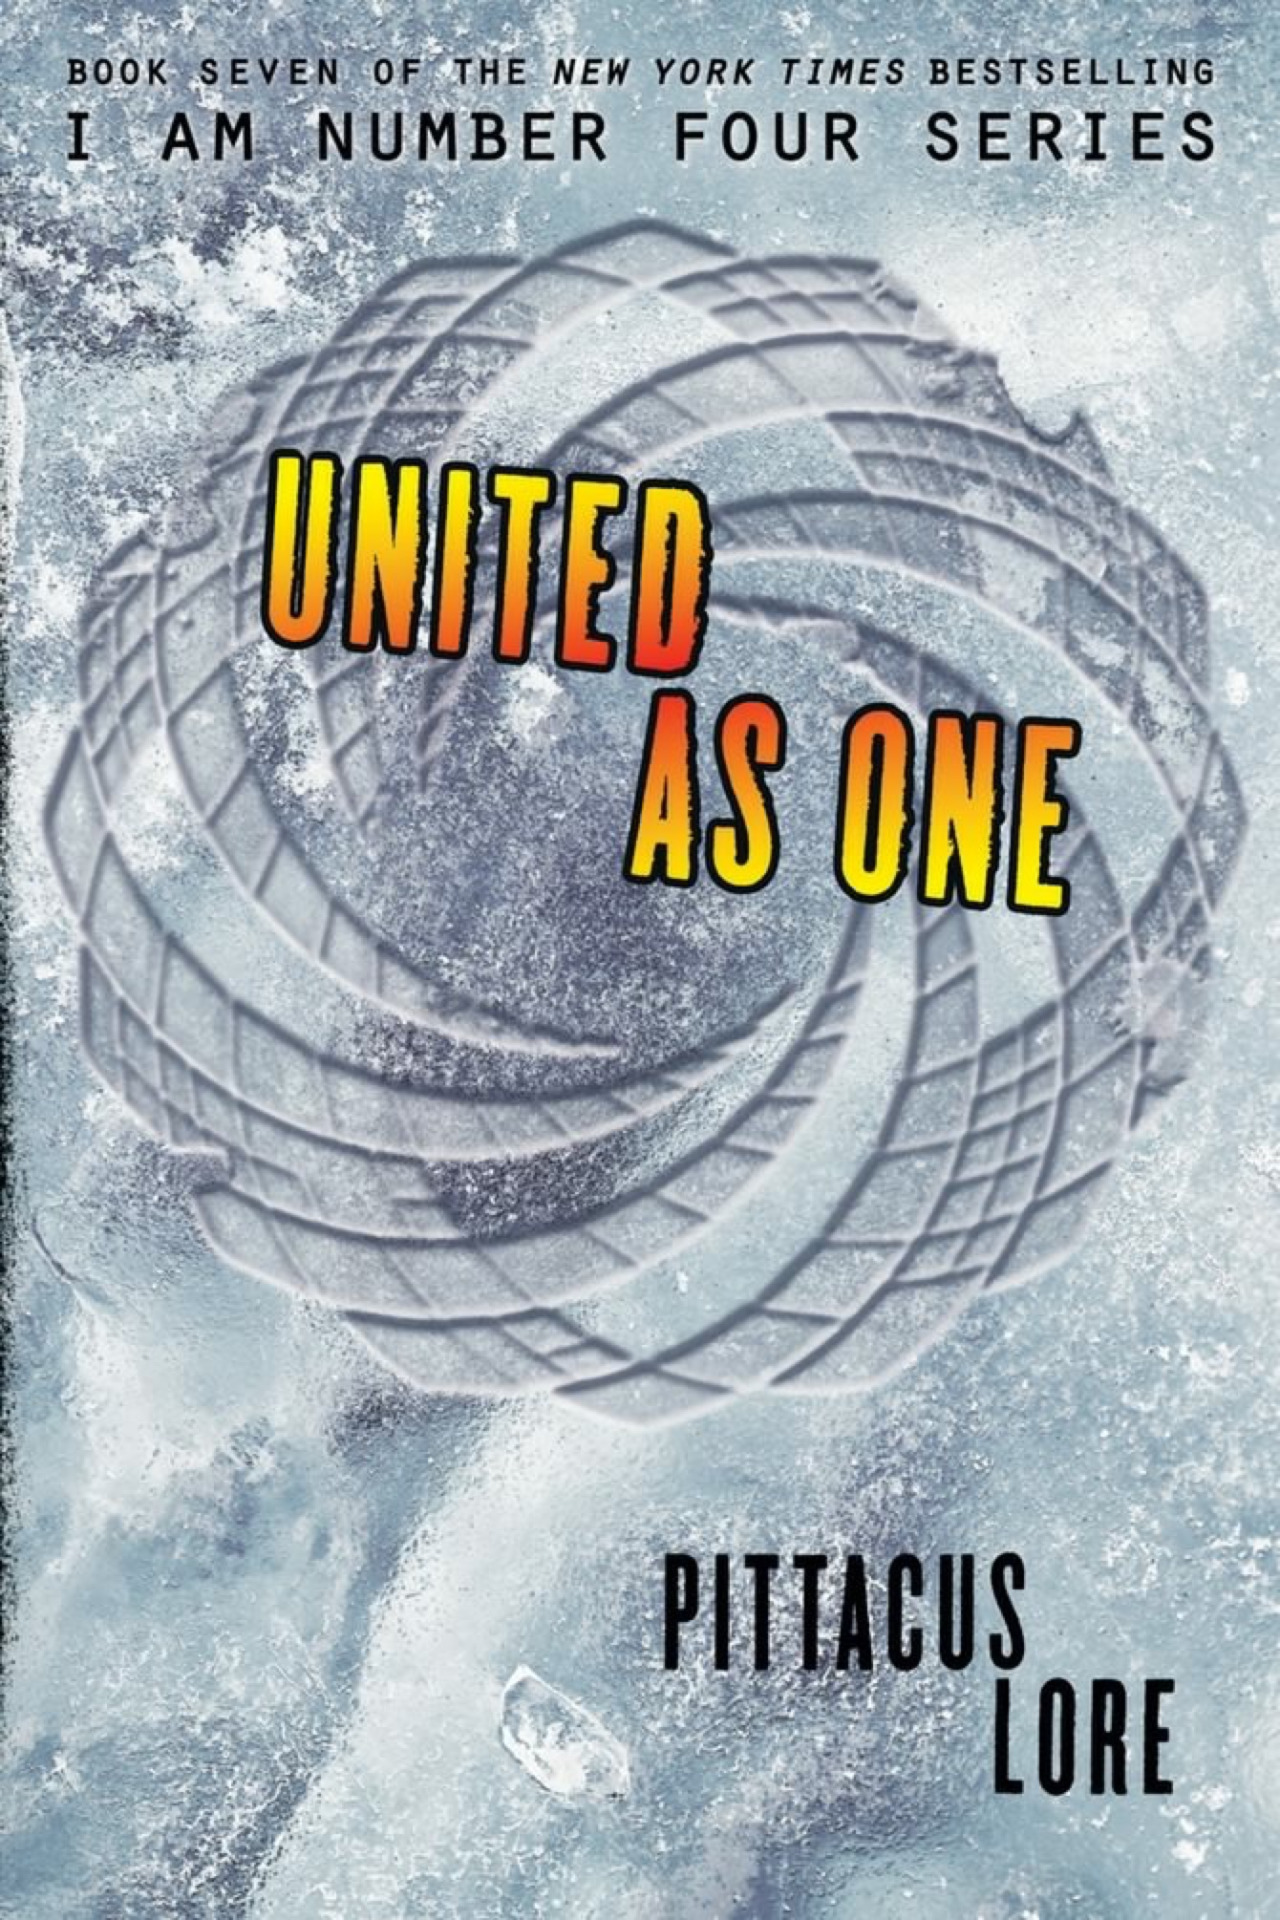 Book Cover Series Pepito : United as one the lorien legacies wiki fandom powered